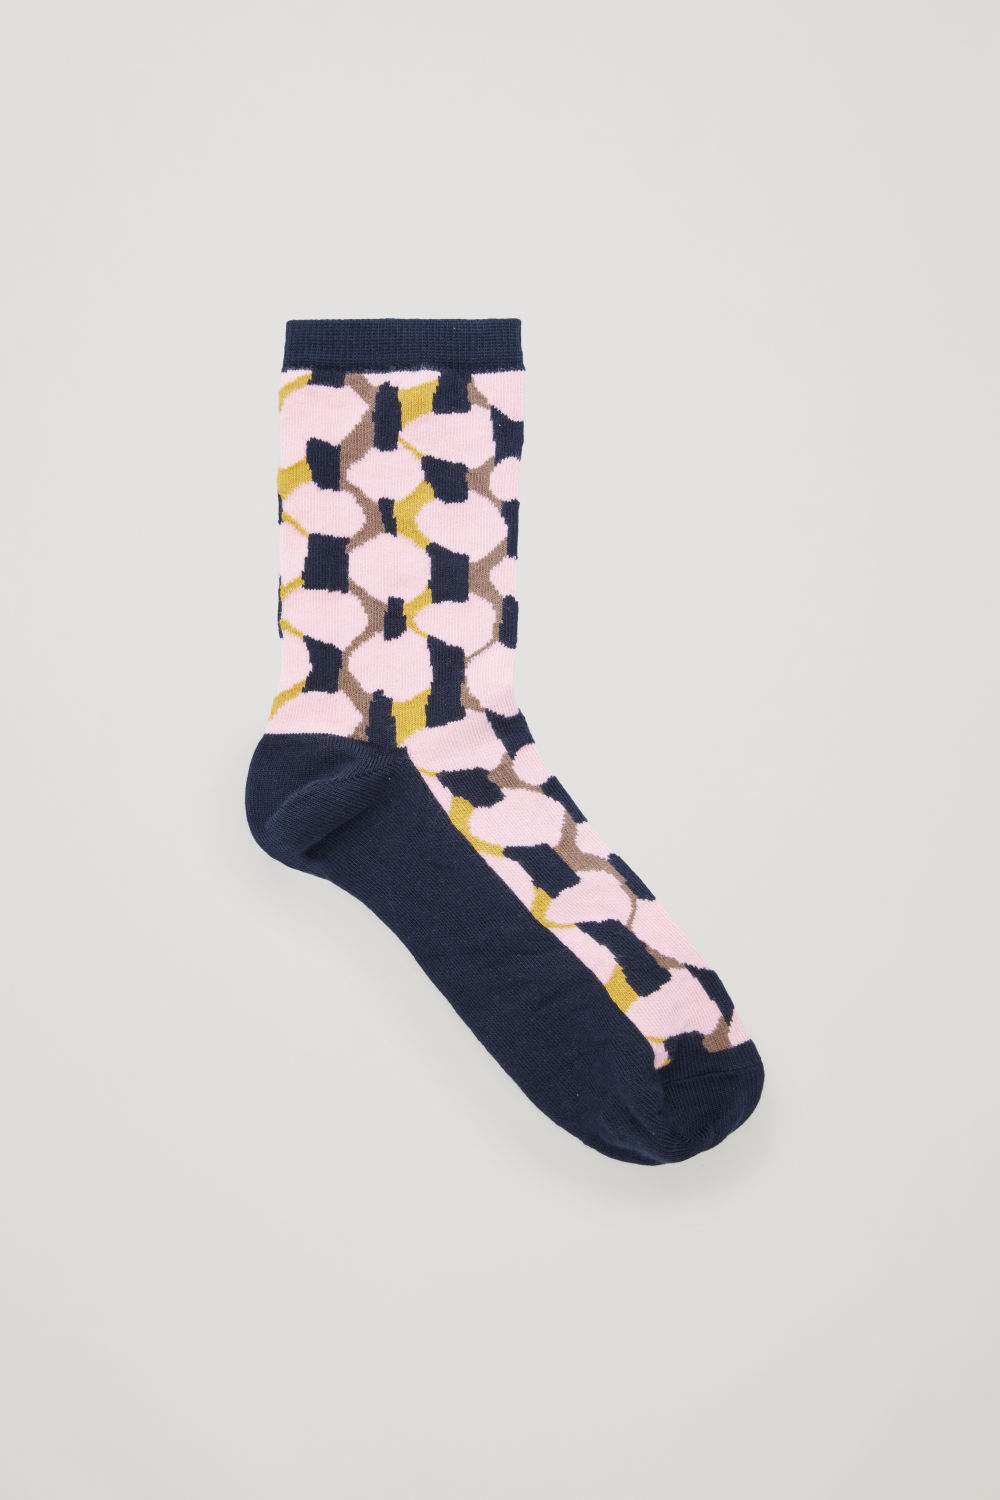 코스 양말 COS PRINTED COTTON SOCKS,Yellow \/ Pink